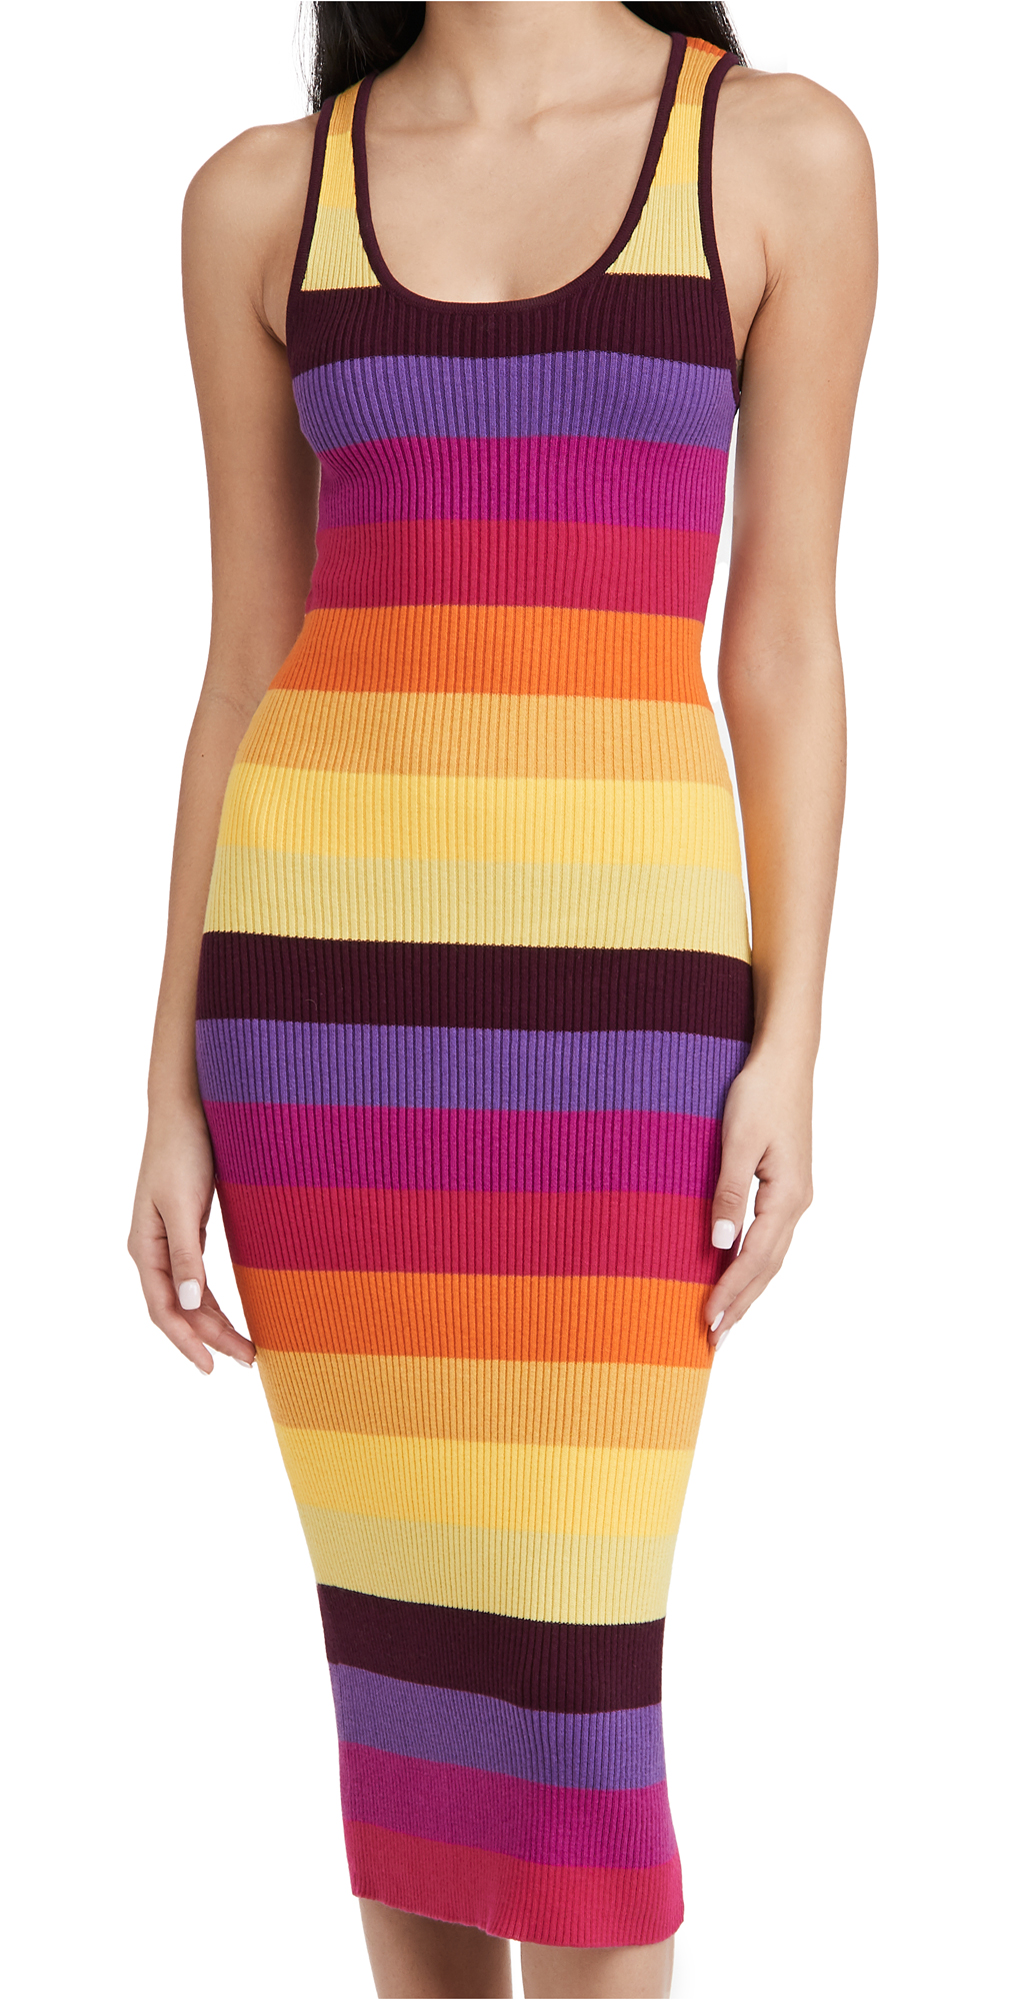 Le Superbe Prismatic Ribbed Dress